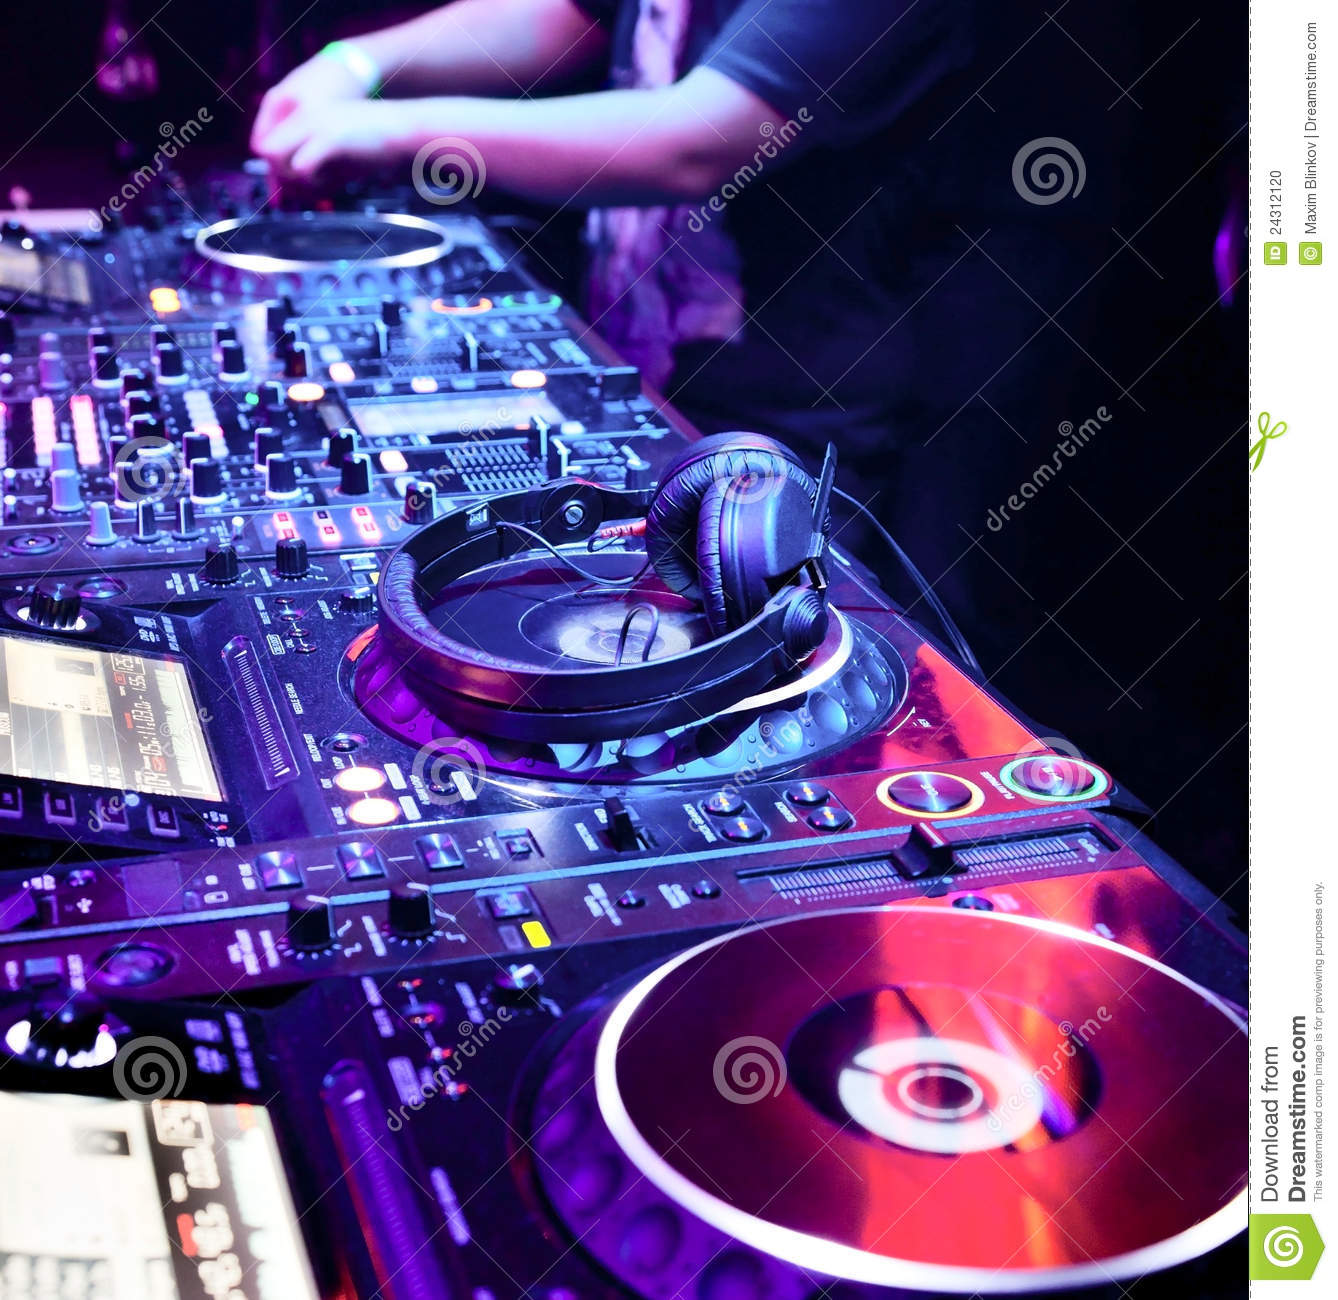 Dj mixes the track stock photo  Image of channels, nightclub